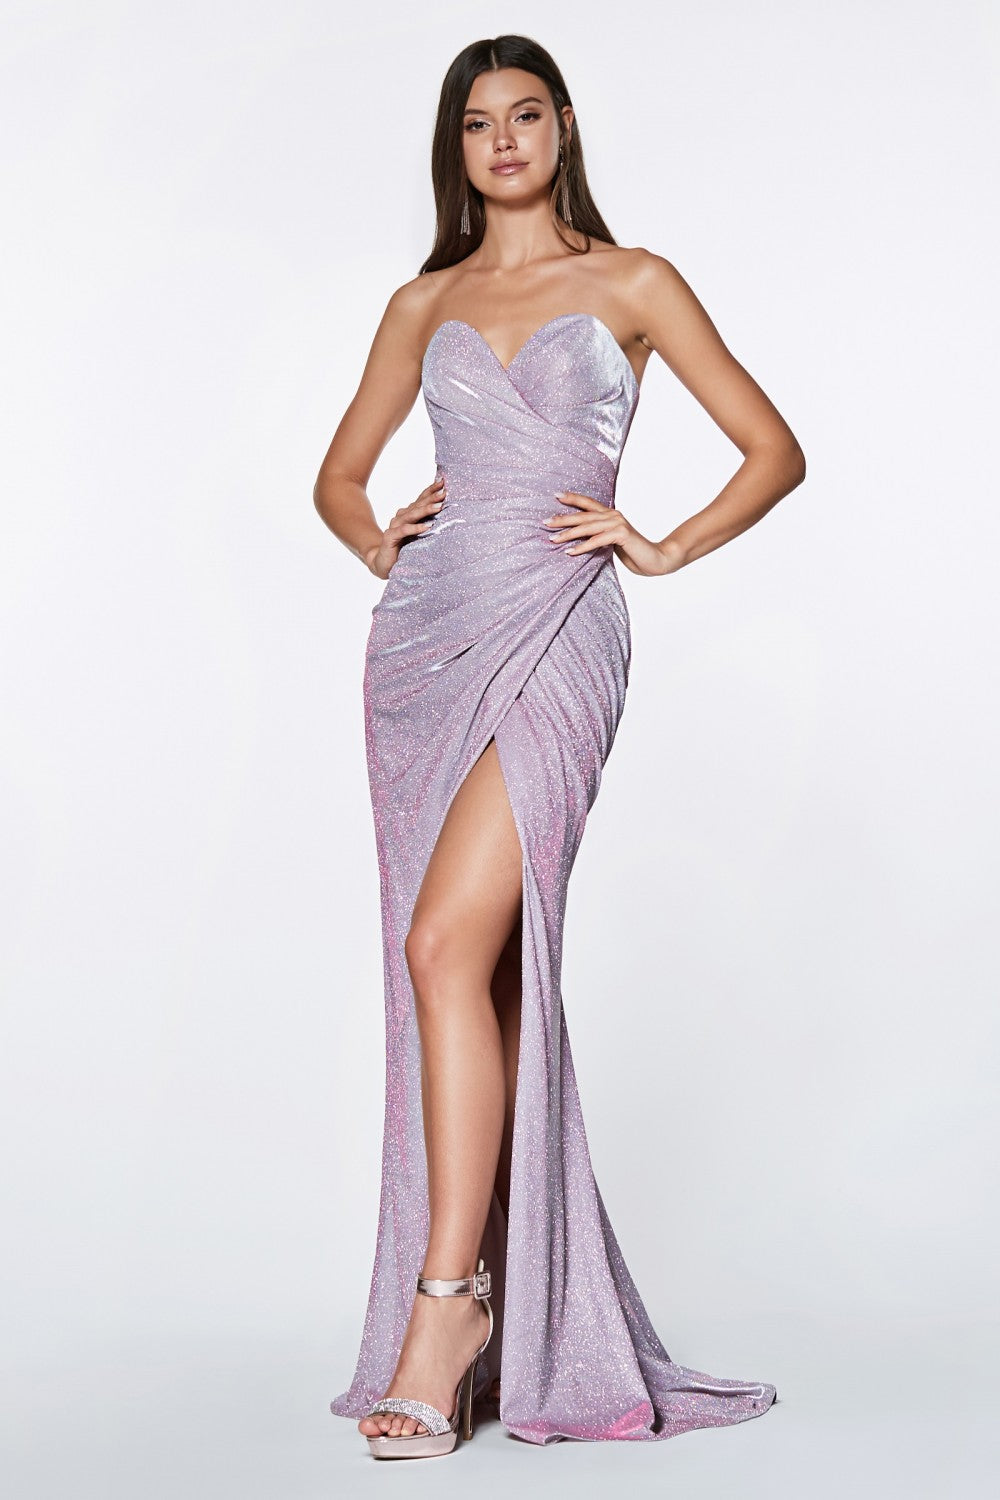 Cinderella Divine Chart I CD CE0019 - Strapless Glitter Gown with Sweetheart Neckline and Leg Slit - Diggz Prom